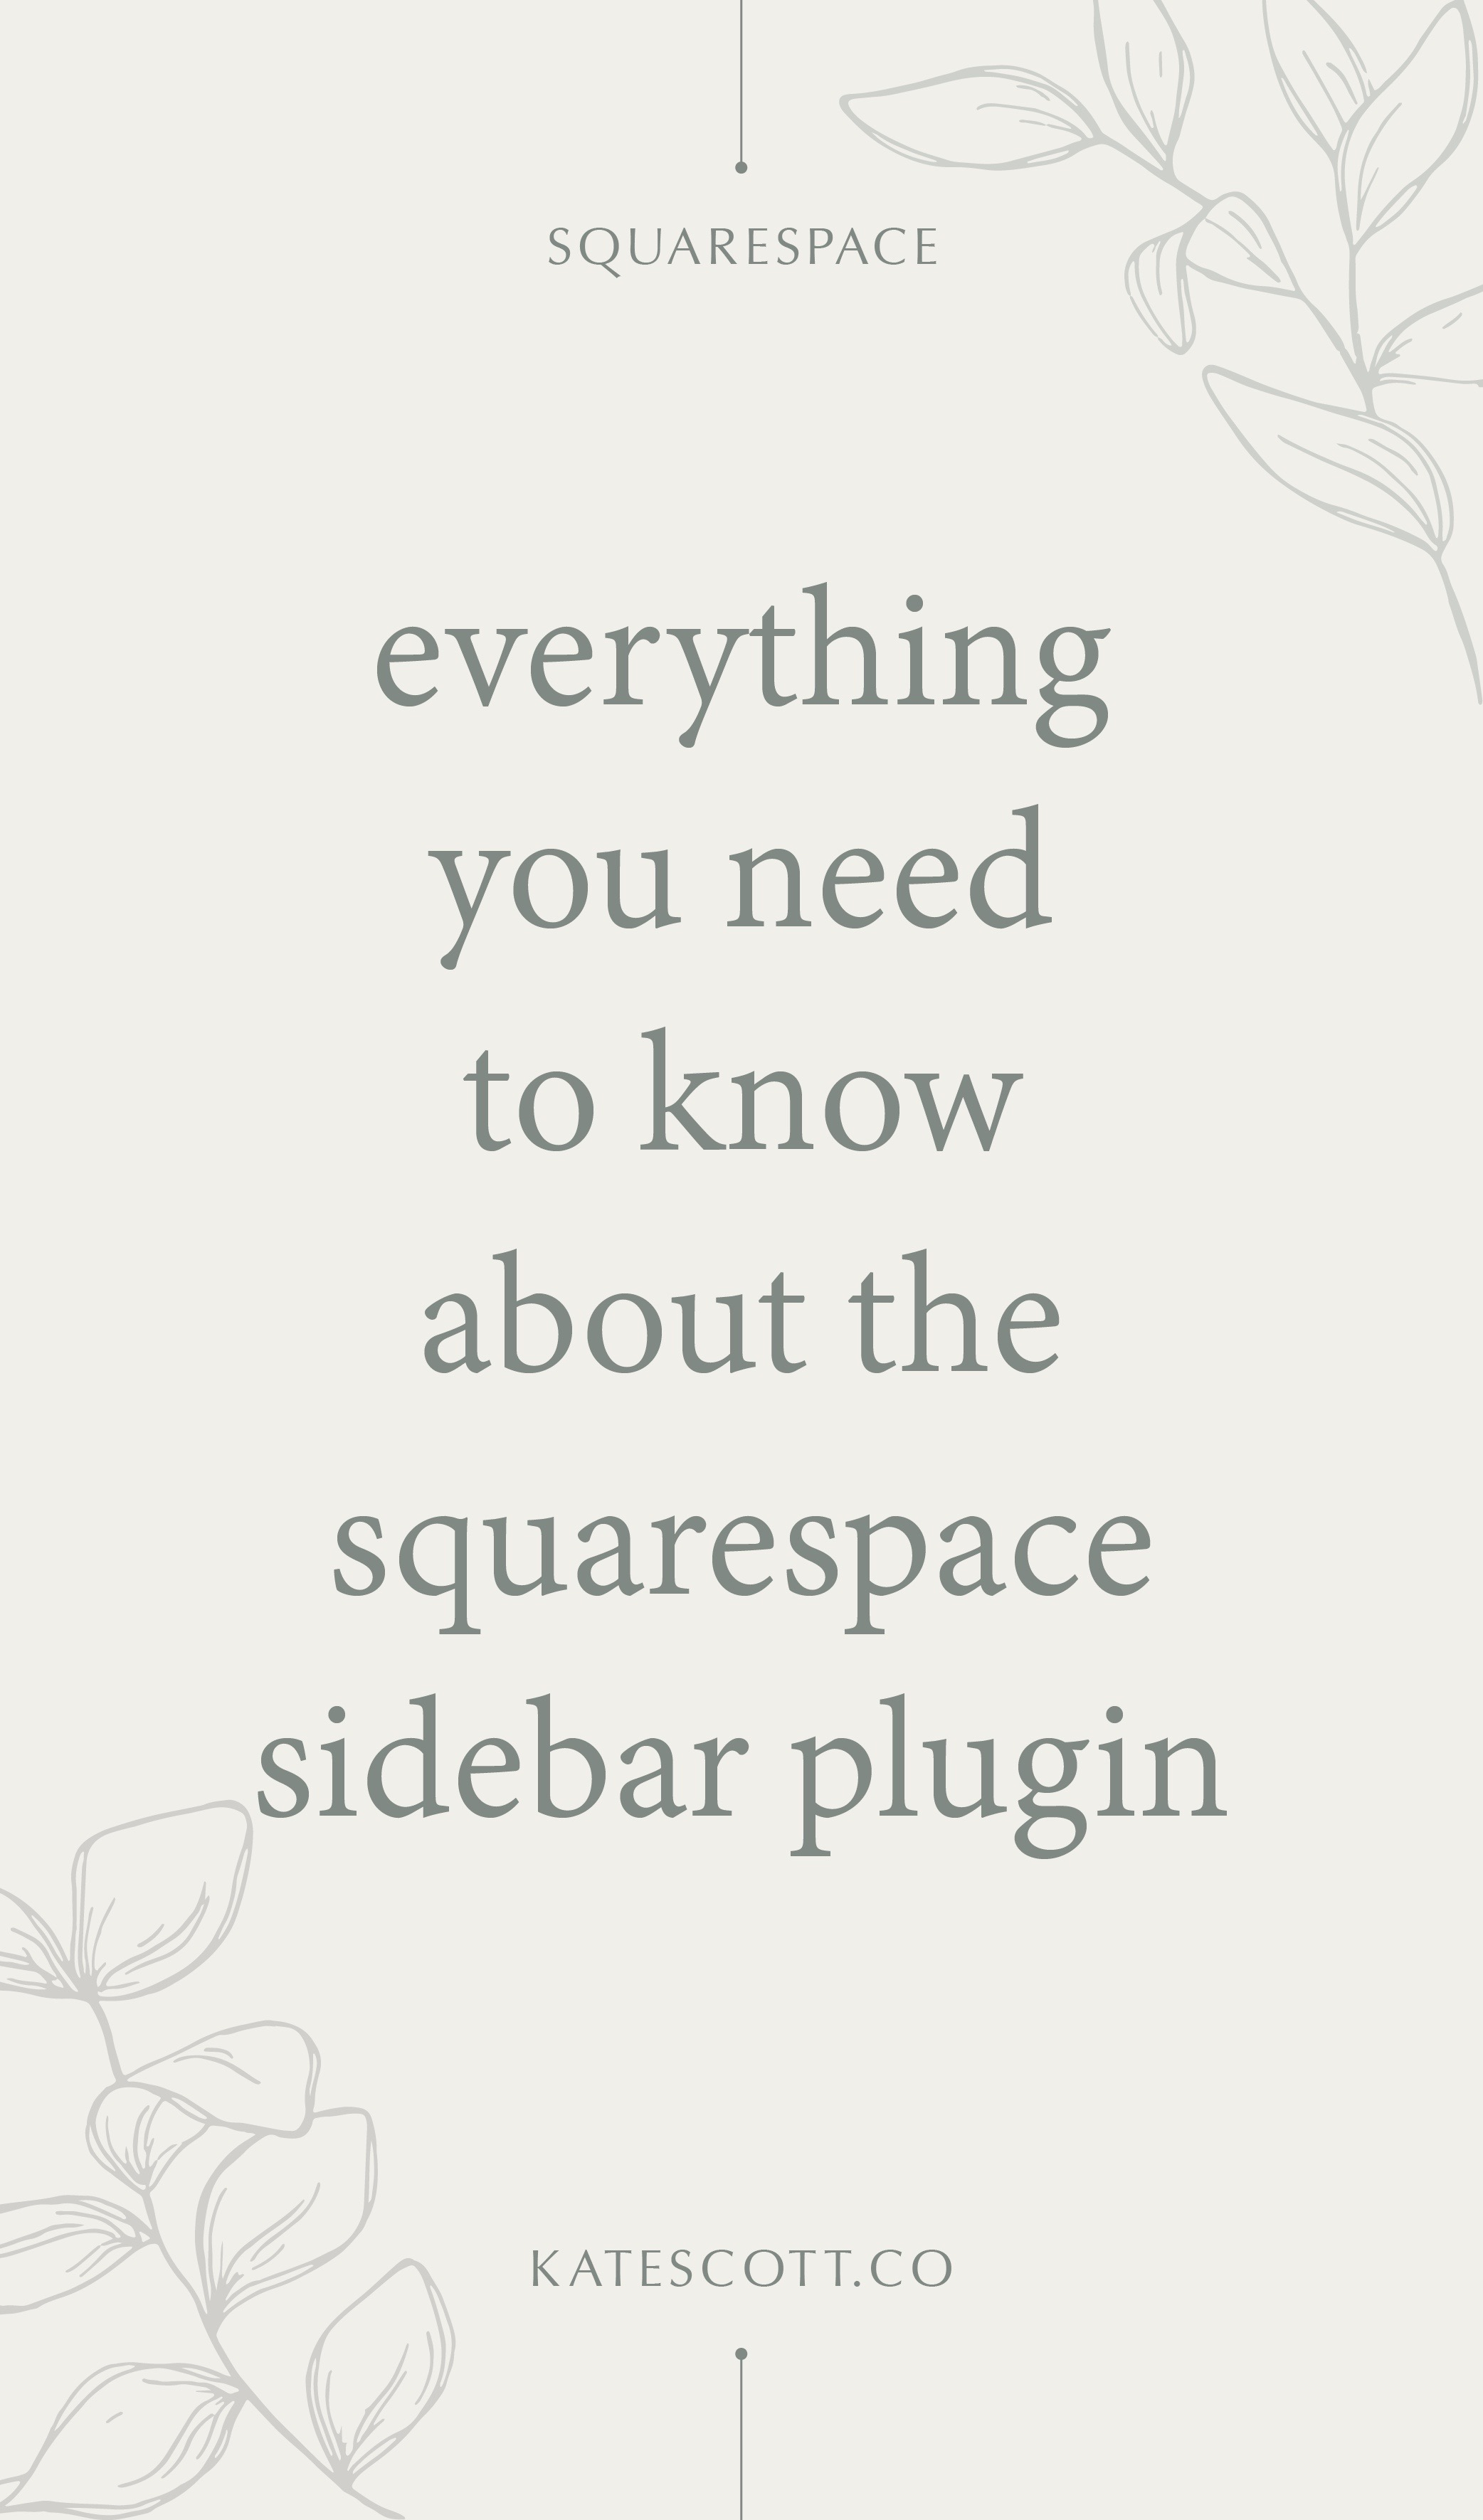 Everything You Need to Know About the Squarespace Sidebar Template | Squarespace Design | Squarespace Tips and Tricks | Squarespace Blog Design | Squarespace Blog Templates | Squarespace Plugins | #squarespace #squarespacedesign #squarespacetips #squarespaceplugins